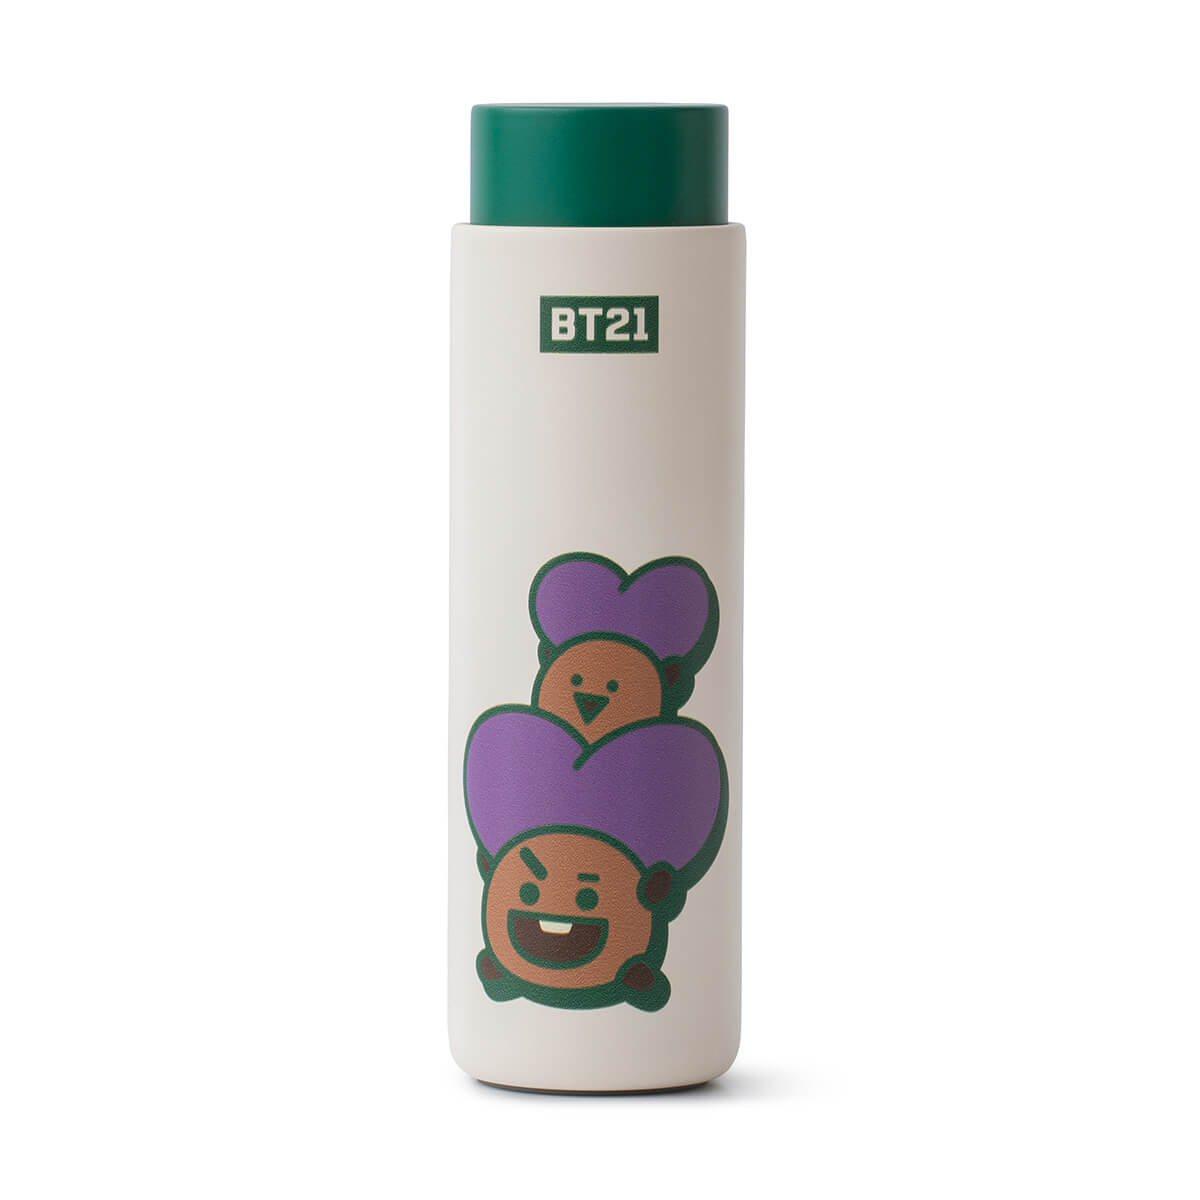 BT21 SHOOKY Lock & Lock Slim Tumbler + Bag Set